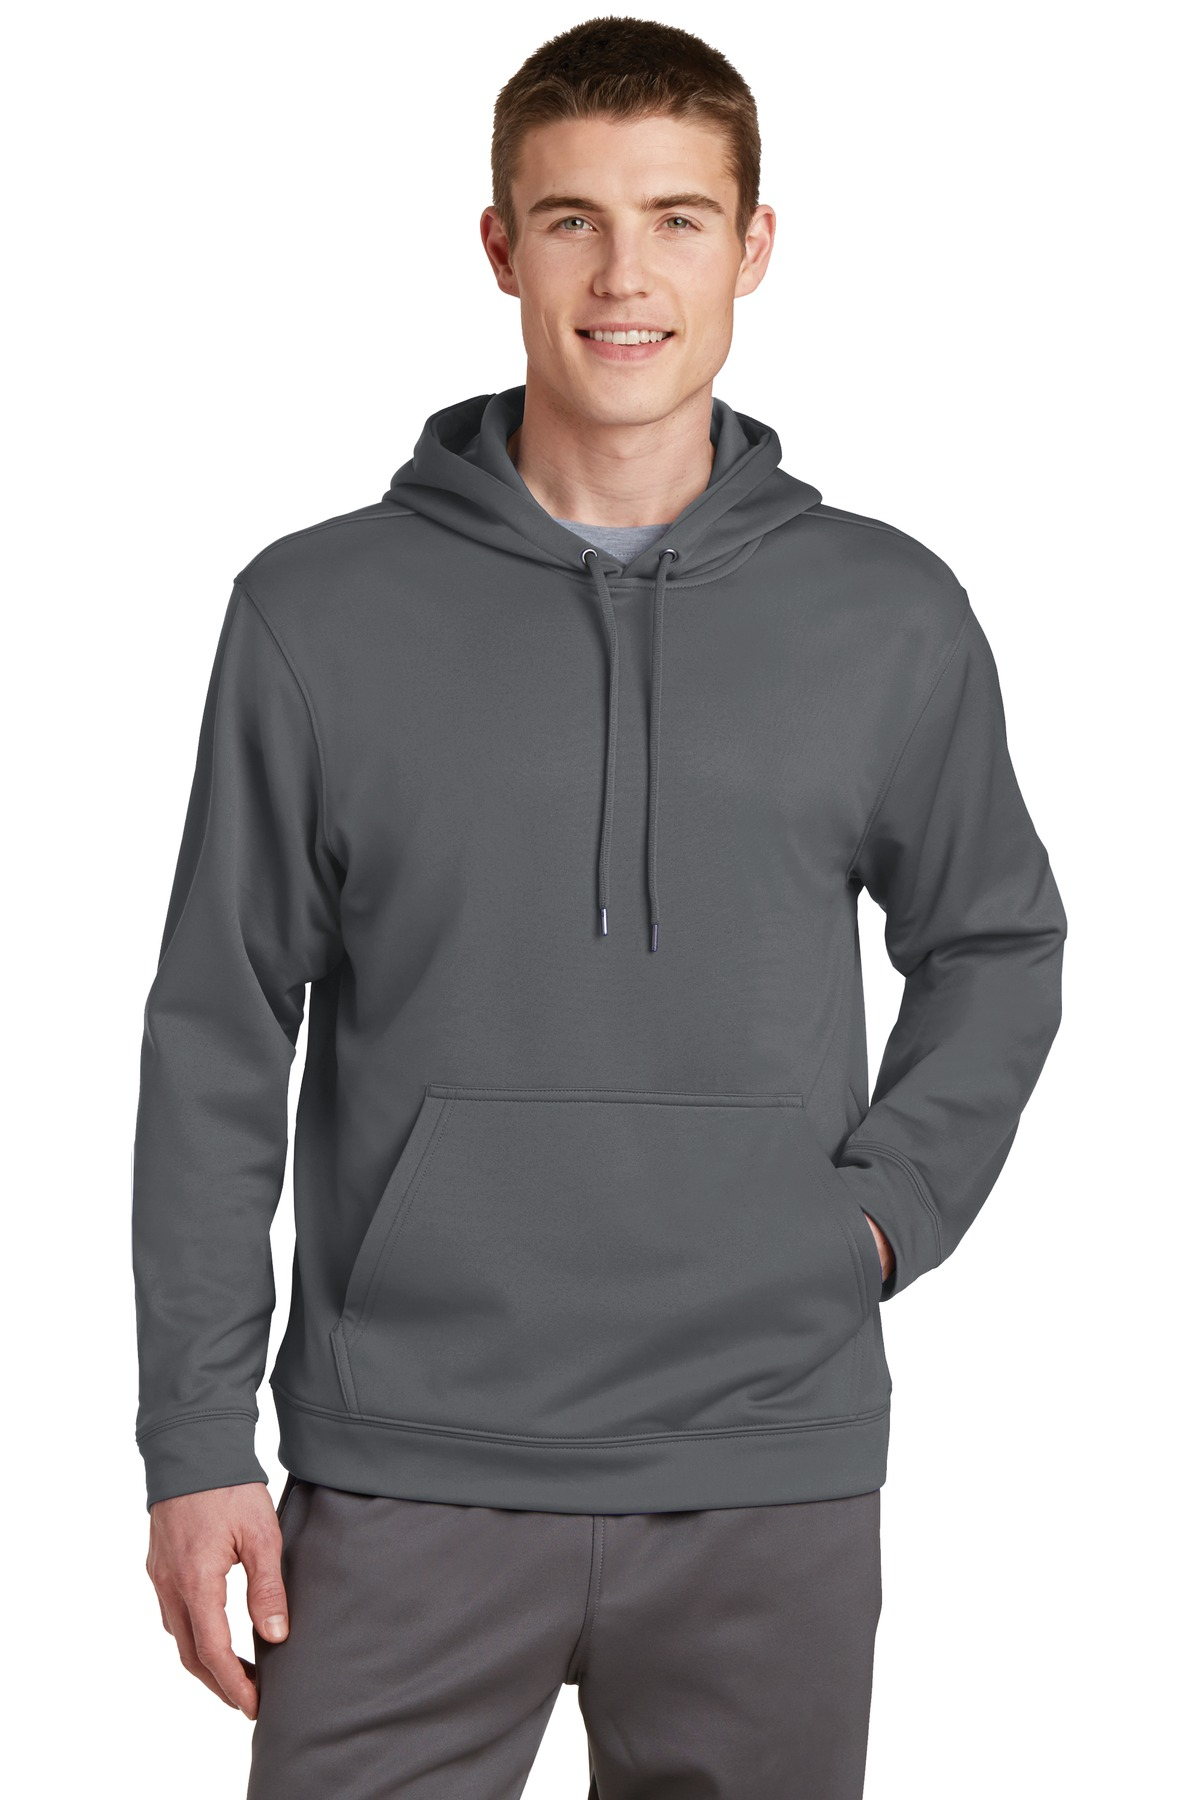 Sport-Tek ®  Sport-Wick ®  Fleece Hooded Pullover.  F244 - Dark Smoke Grey